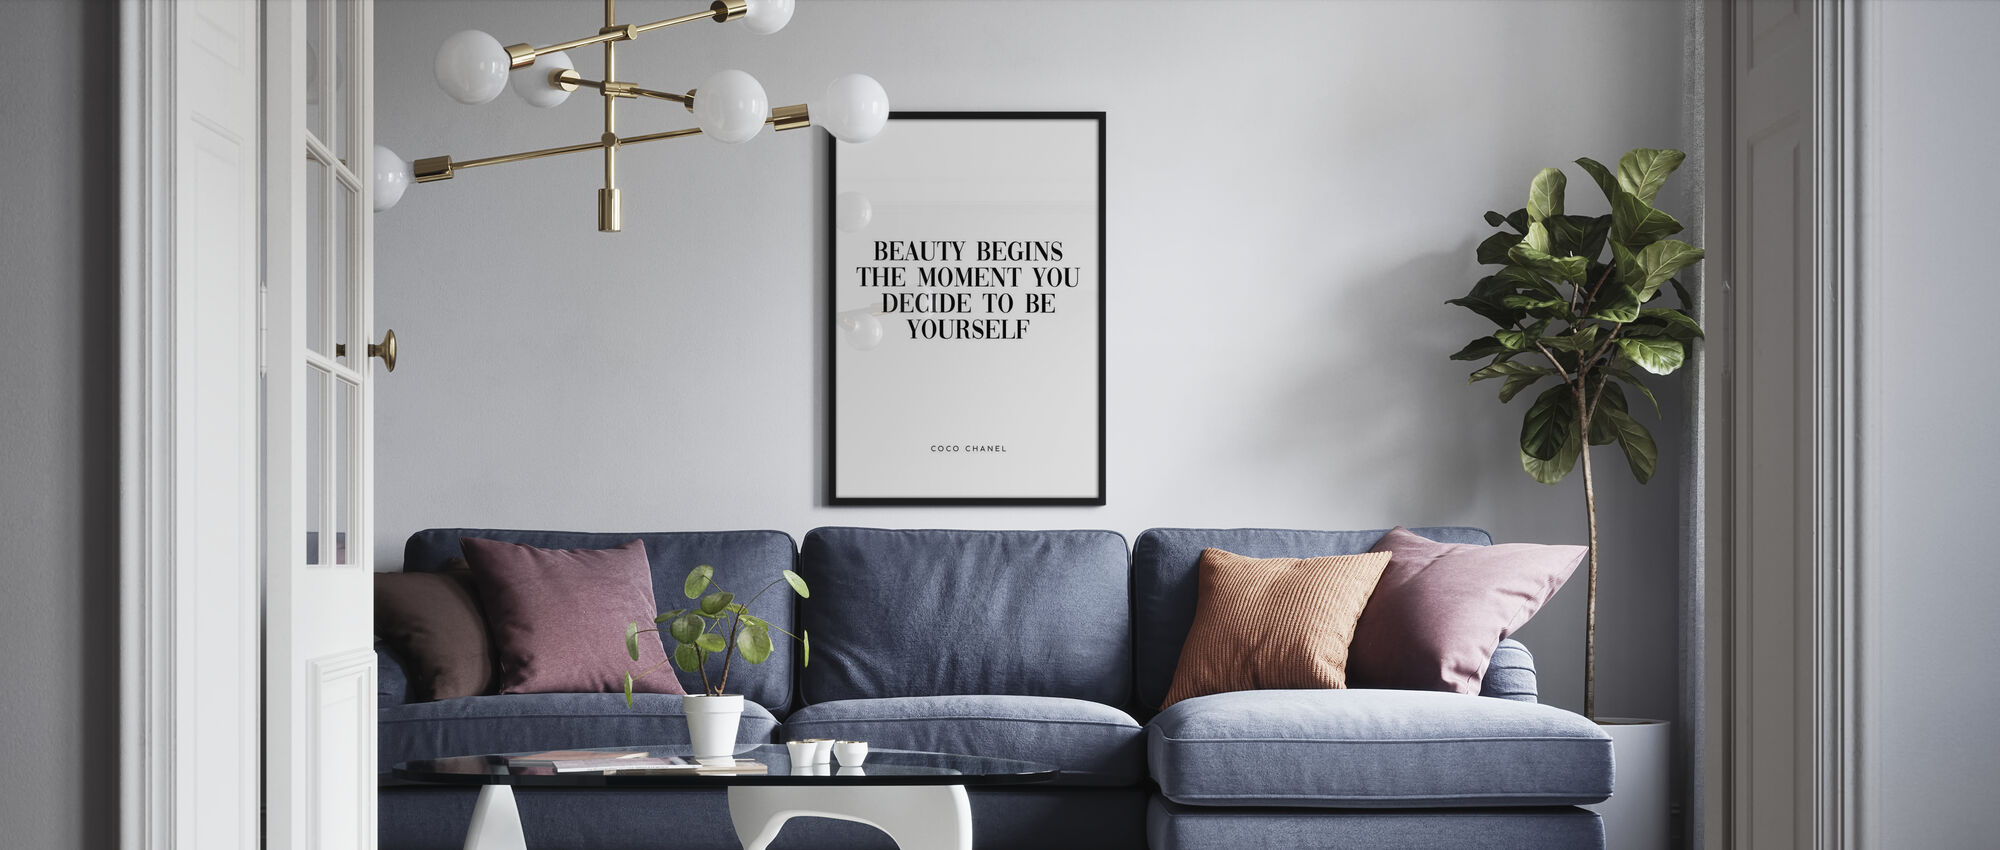 Coco Chanel Quote - Poster - Living Room